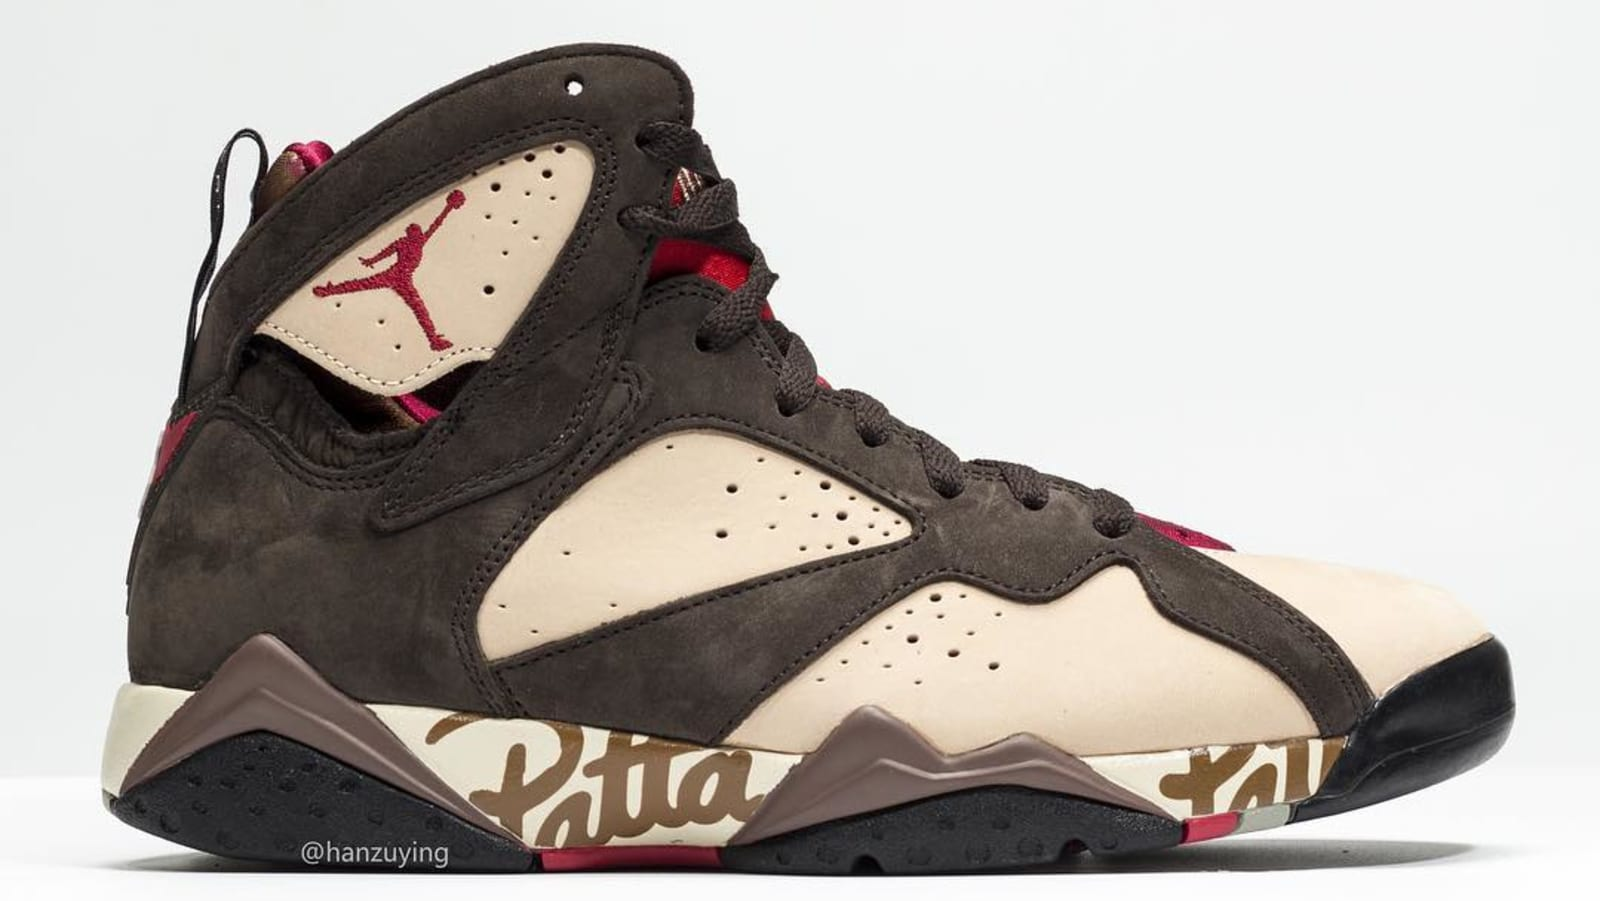 new arrival f963e 9545c Here s Another Look at the Patta x Air Jordan 7 Collab